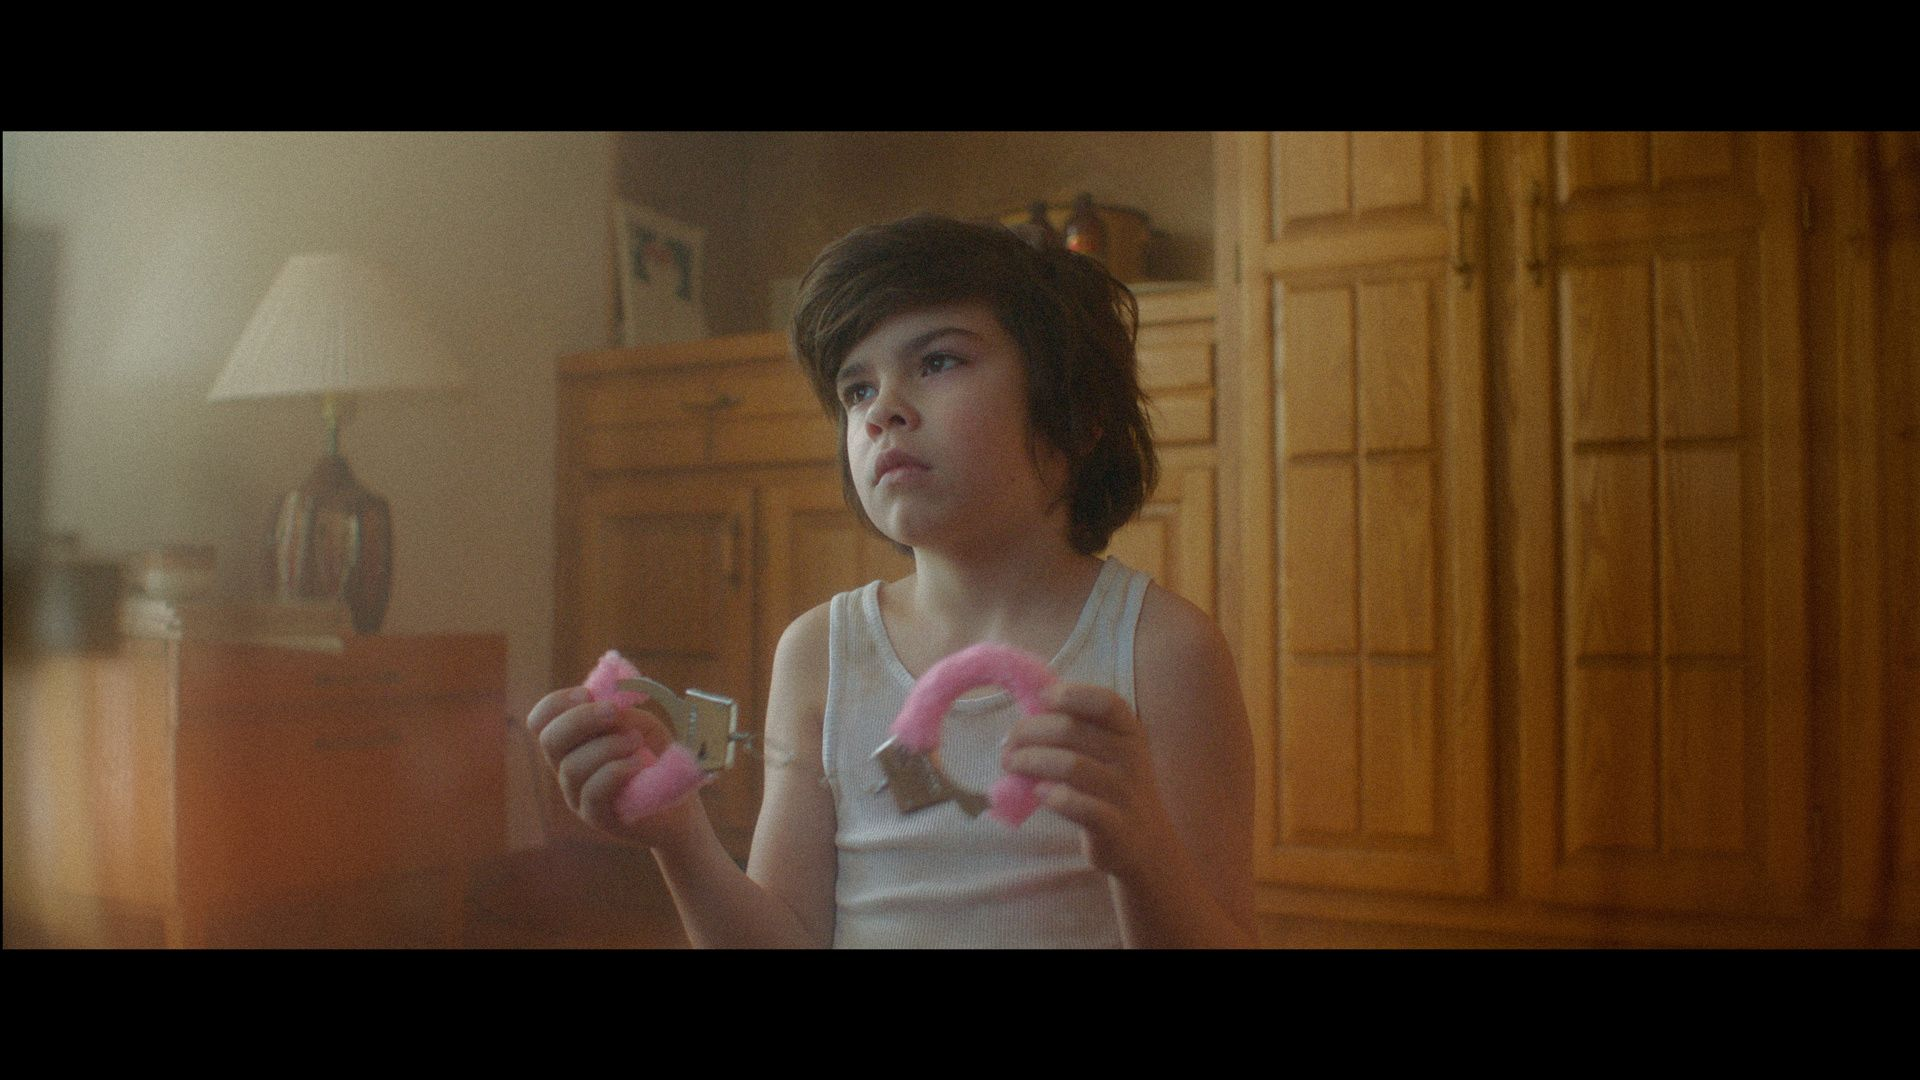 kid looking at TV holding fuzzy pink handcuffs in TV series La Loi C'est La Loi filmed by Les Gamins